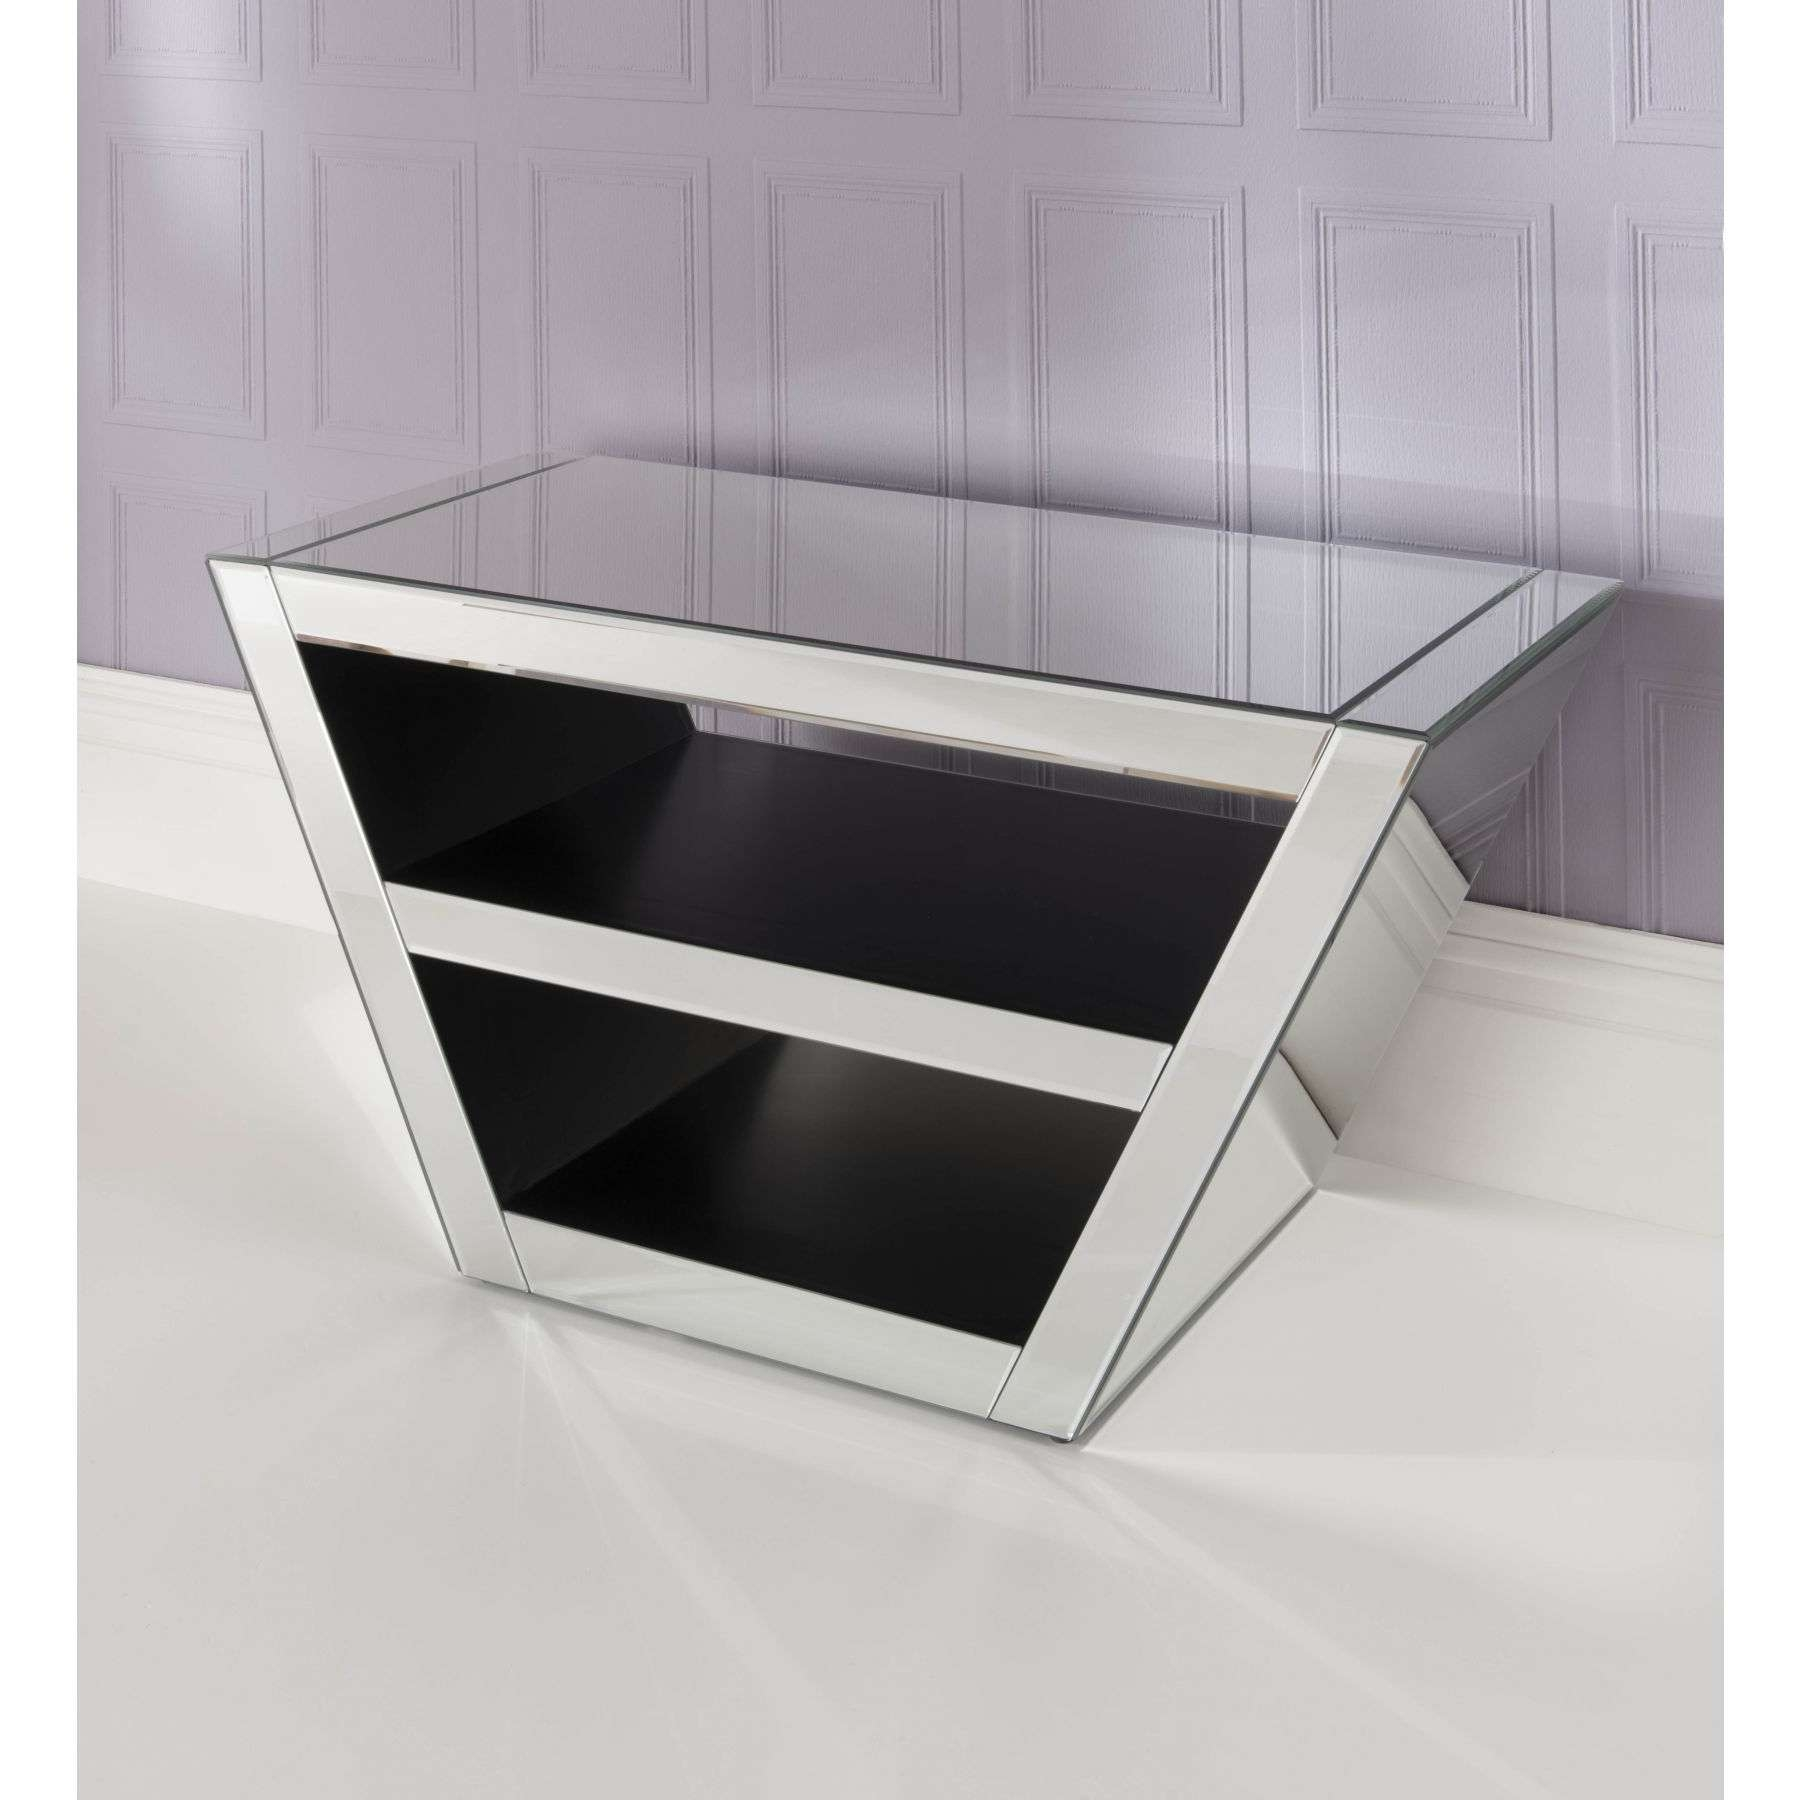 Mirrored Tv Cabinet | Venetian Glass Tv Stand | Homesdirect365 Inside Mirrored Tv Stands (View 9 of 15)